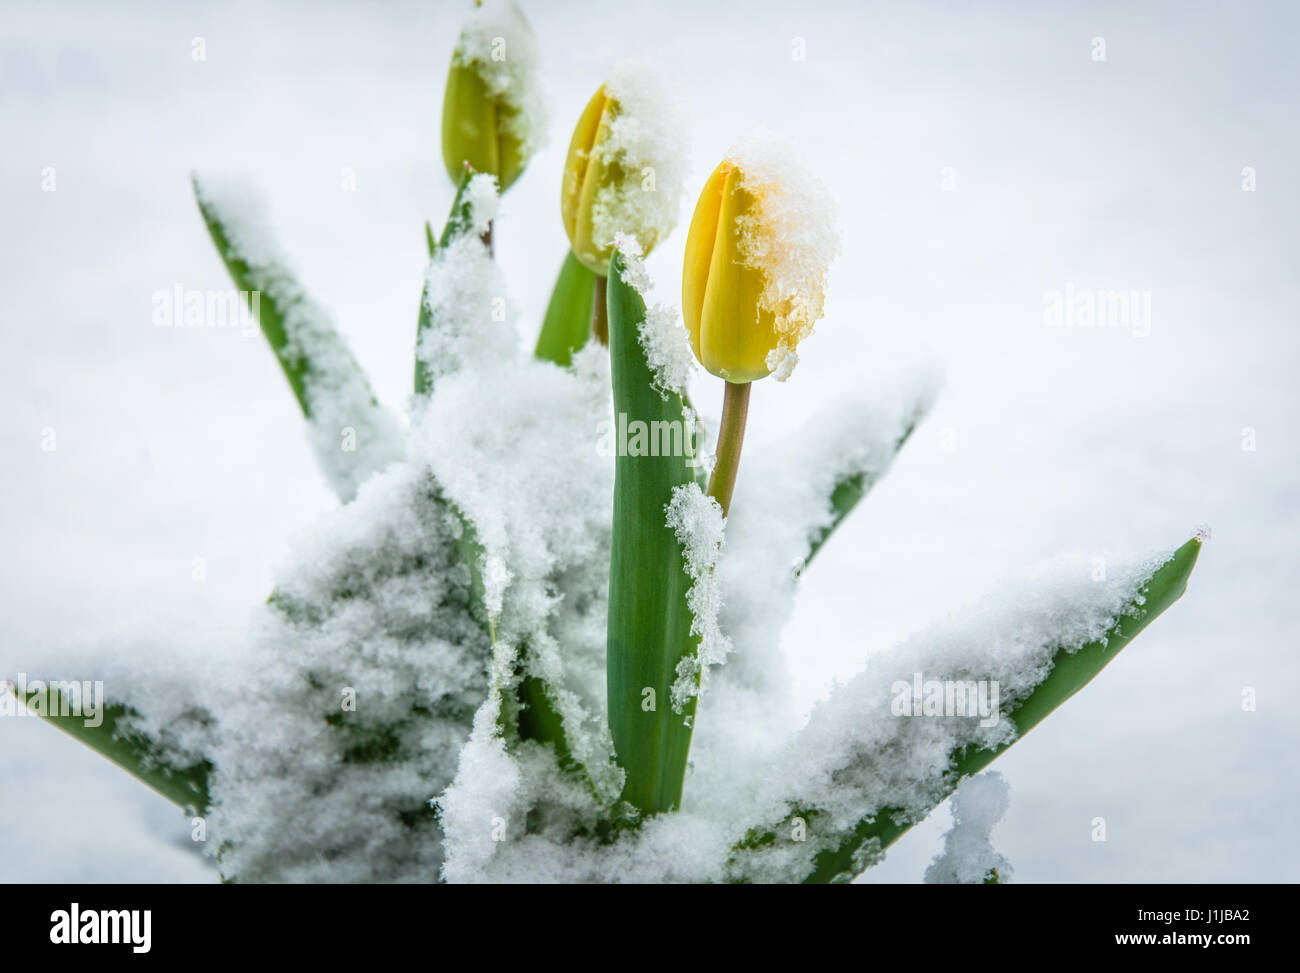 Natural weather anomaly snow covered tulip flowers